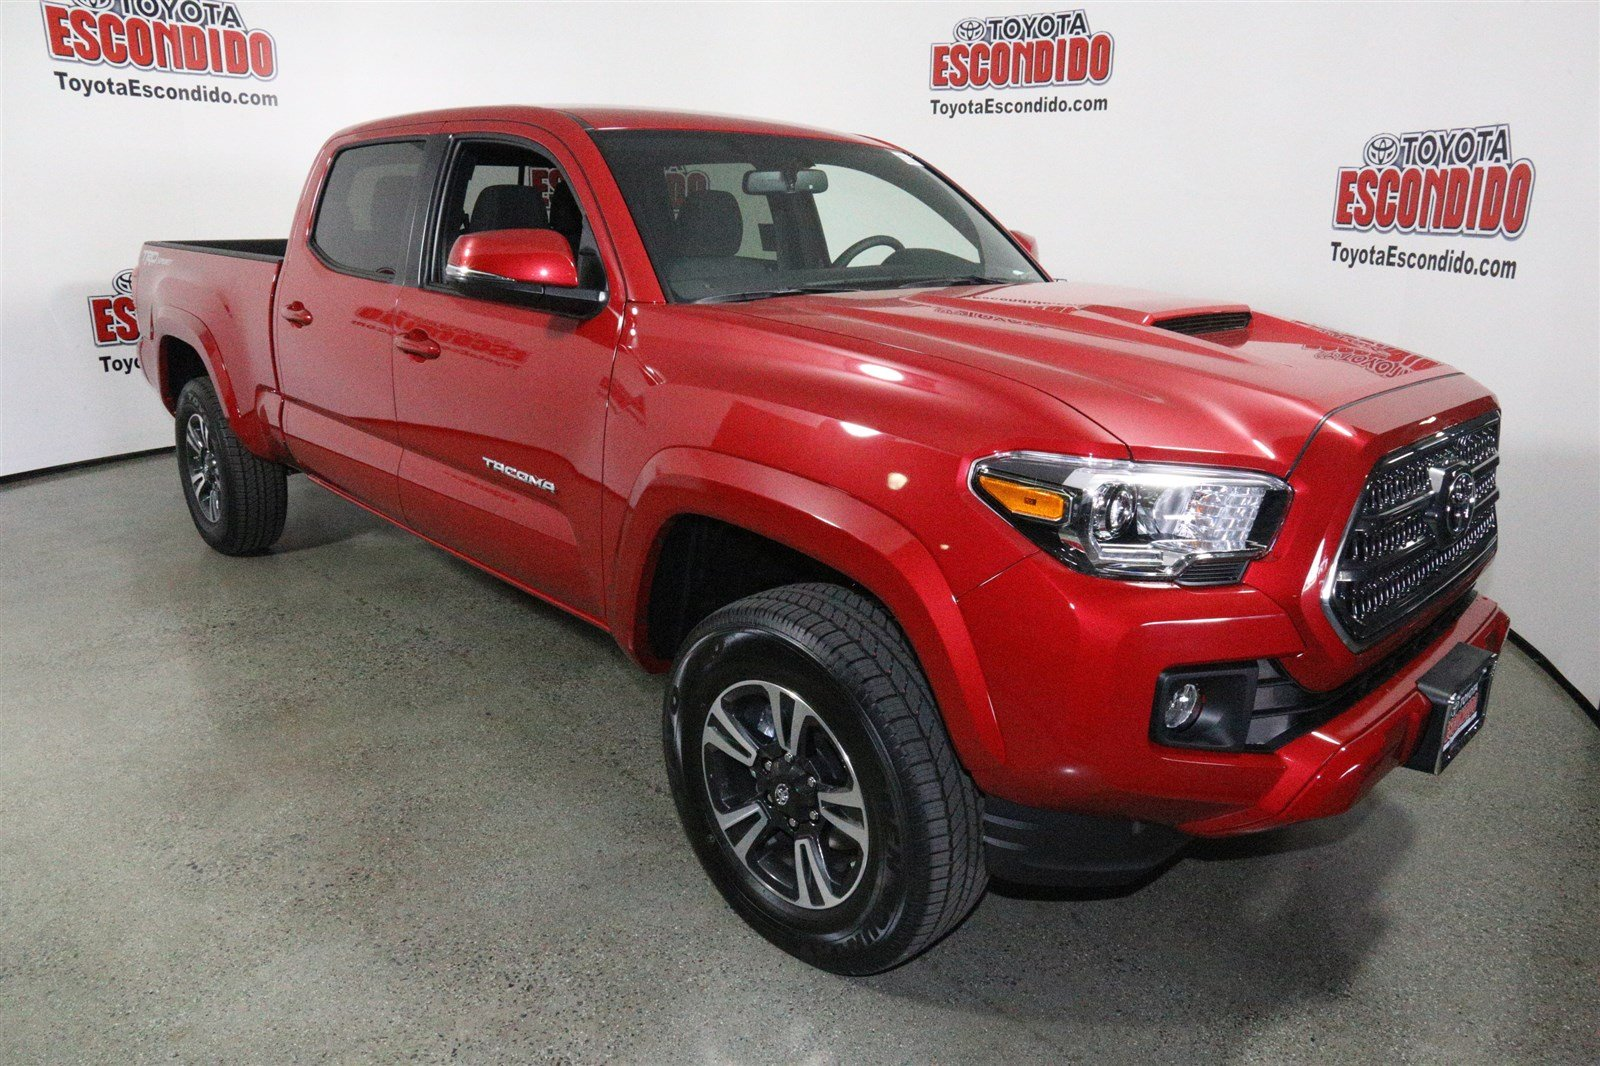 new 2017 toyota tacoma trd sport double cab pickup in escondido hm008718 toyota escondido. Black Bedroom Furniture Sets. Home Design Ideas